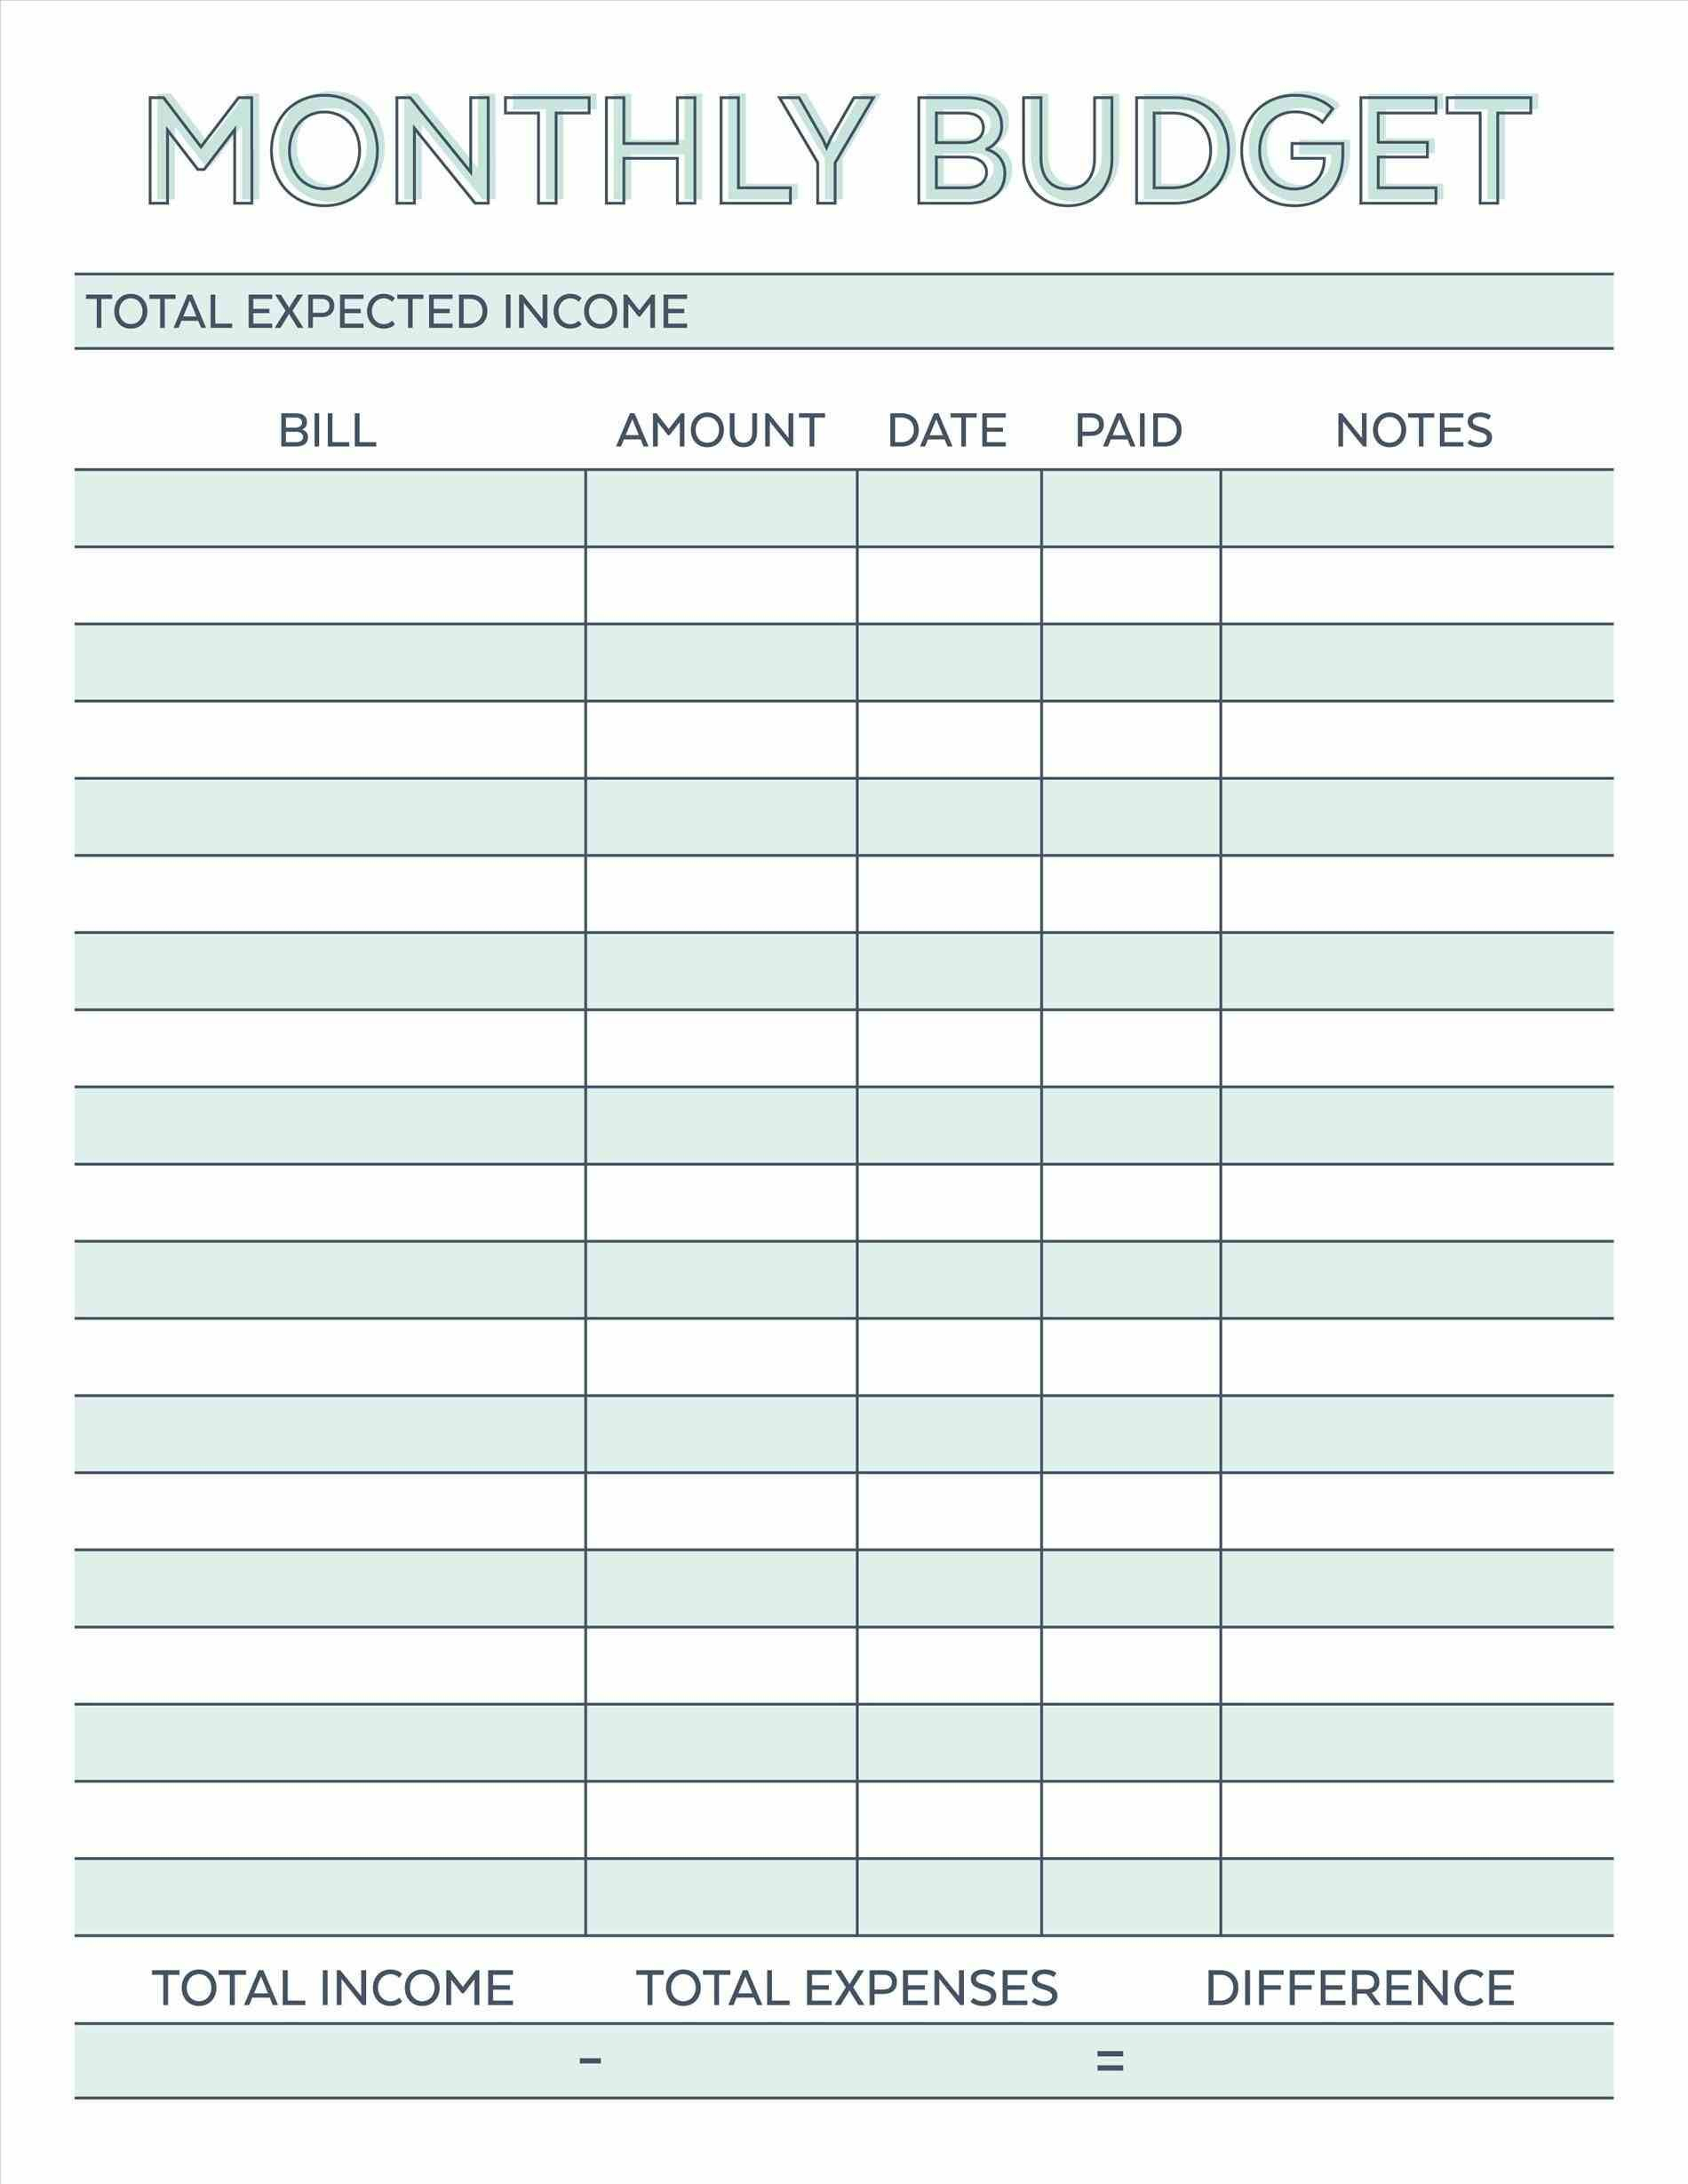 Budget Planner Planner Worksheet Monthly Bills Template Free | Free Printable Monthly Bills Worksheet